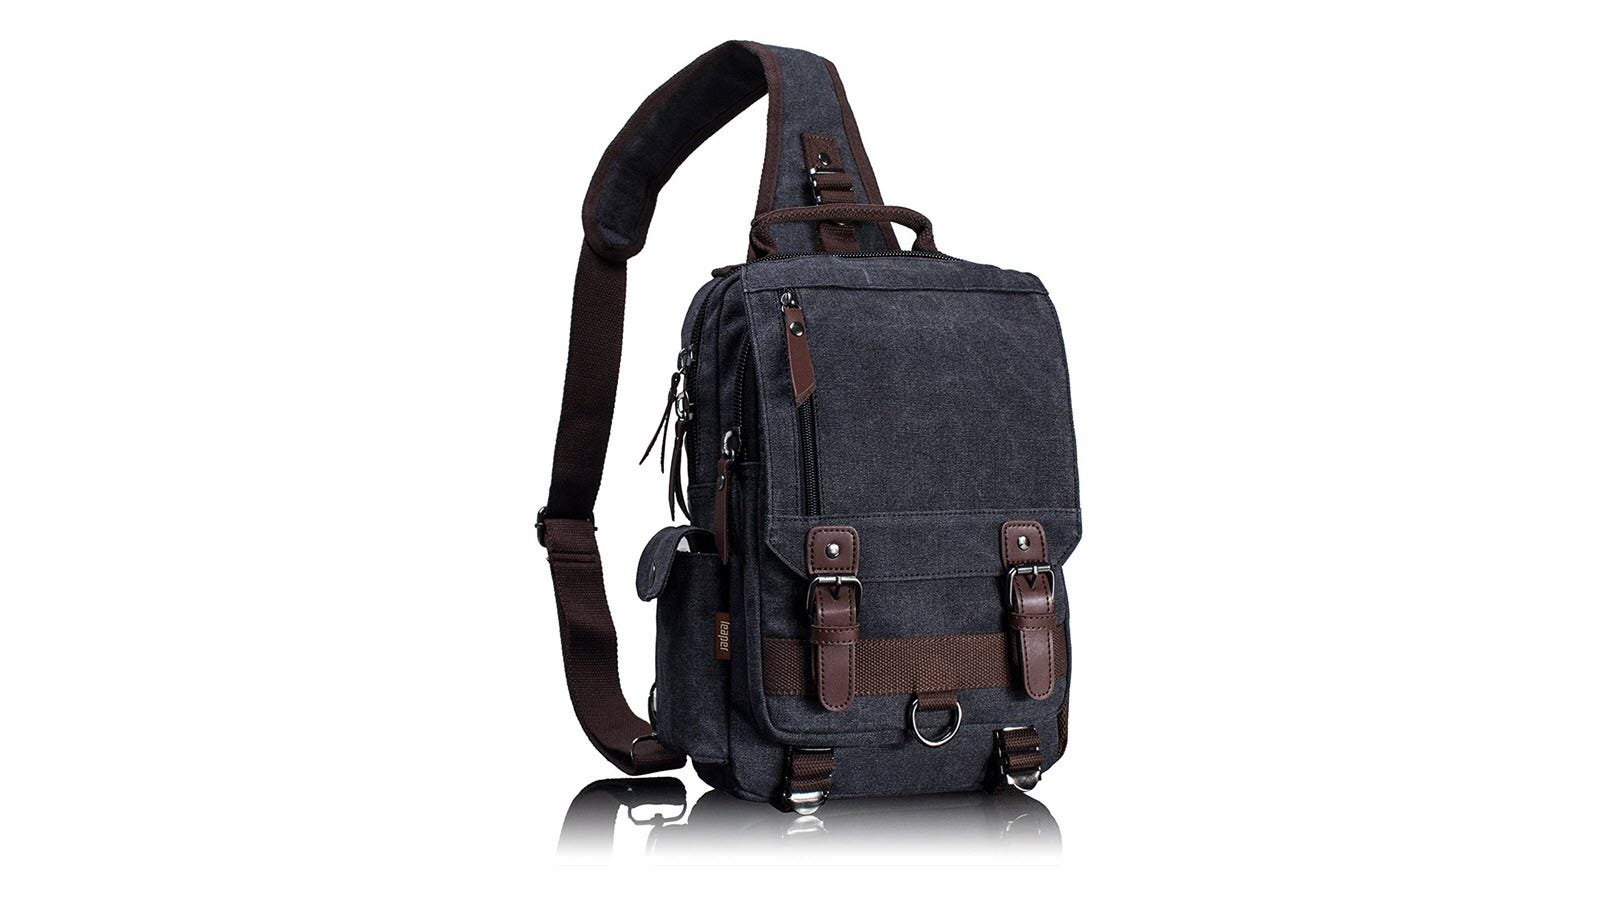 Leaper Retro Sling Bag shown in blue with brown straps.